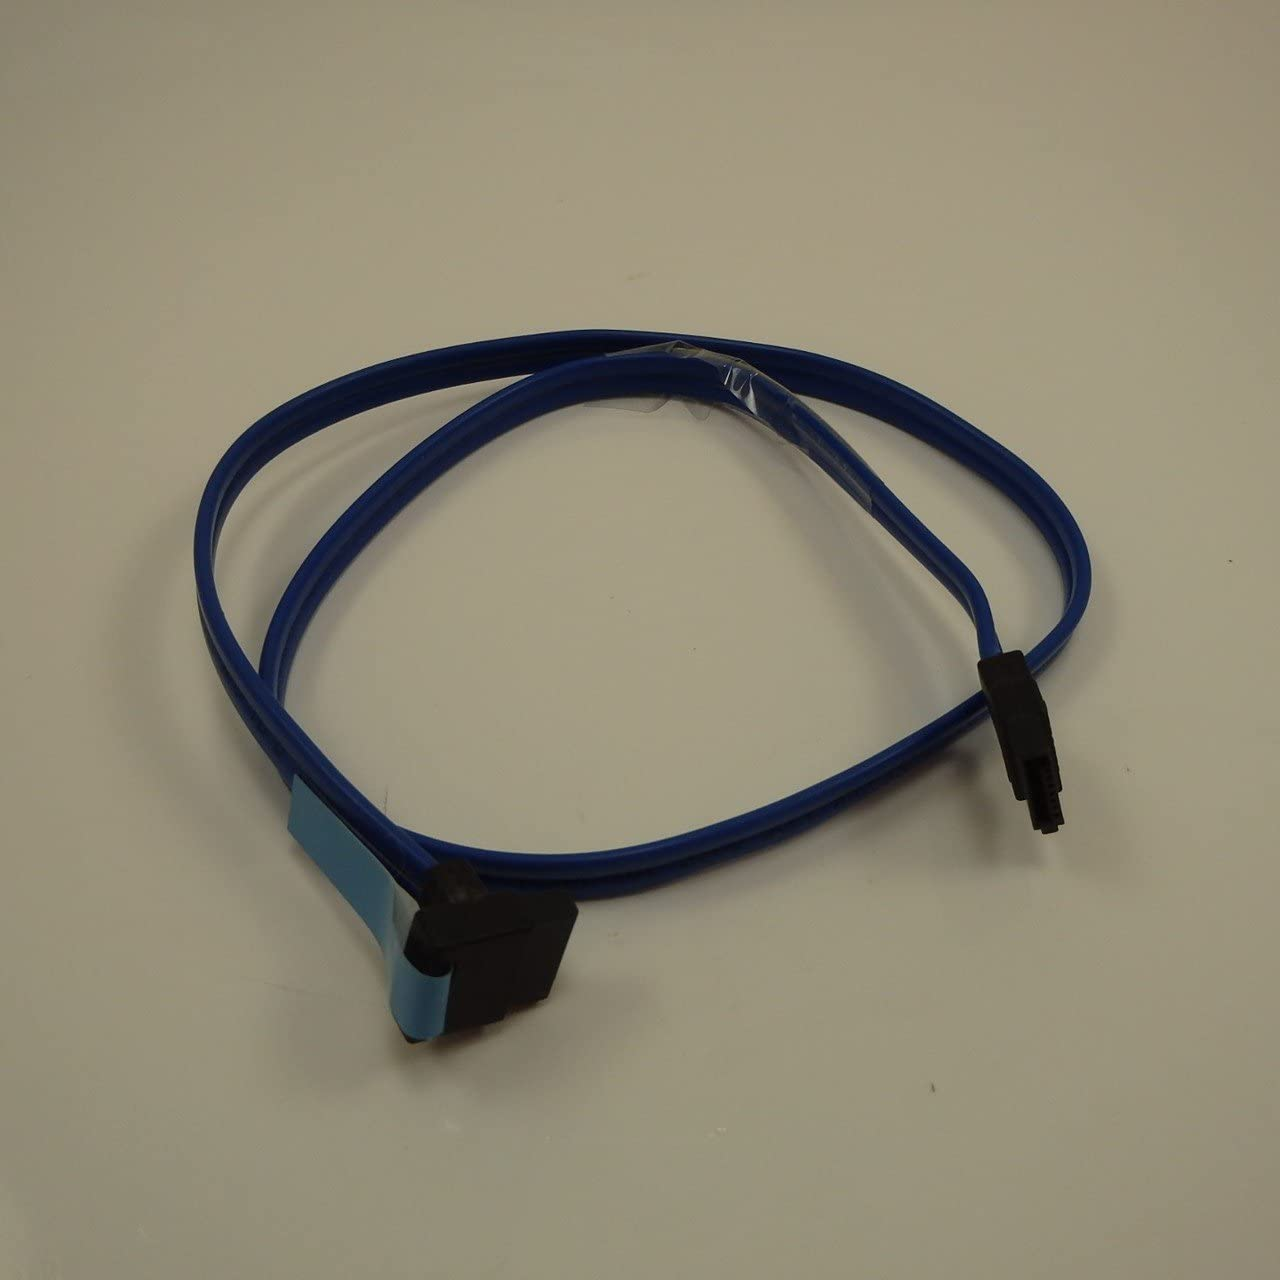 """Genuine Dell M8865 Blue 23""""-Inch Hard Drive HDD DVD CD Optical Drive Right Angle ATA Data SATA Cable, For ANY Computer System That Supports SATA Connectors, Cable Works with SATA I and SATA II Speeds Dell Compatible Part Numbers: M8865"""